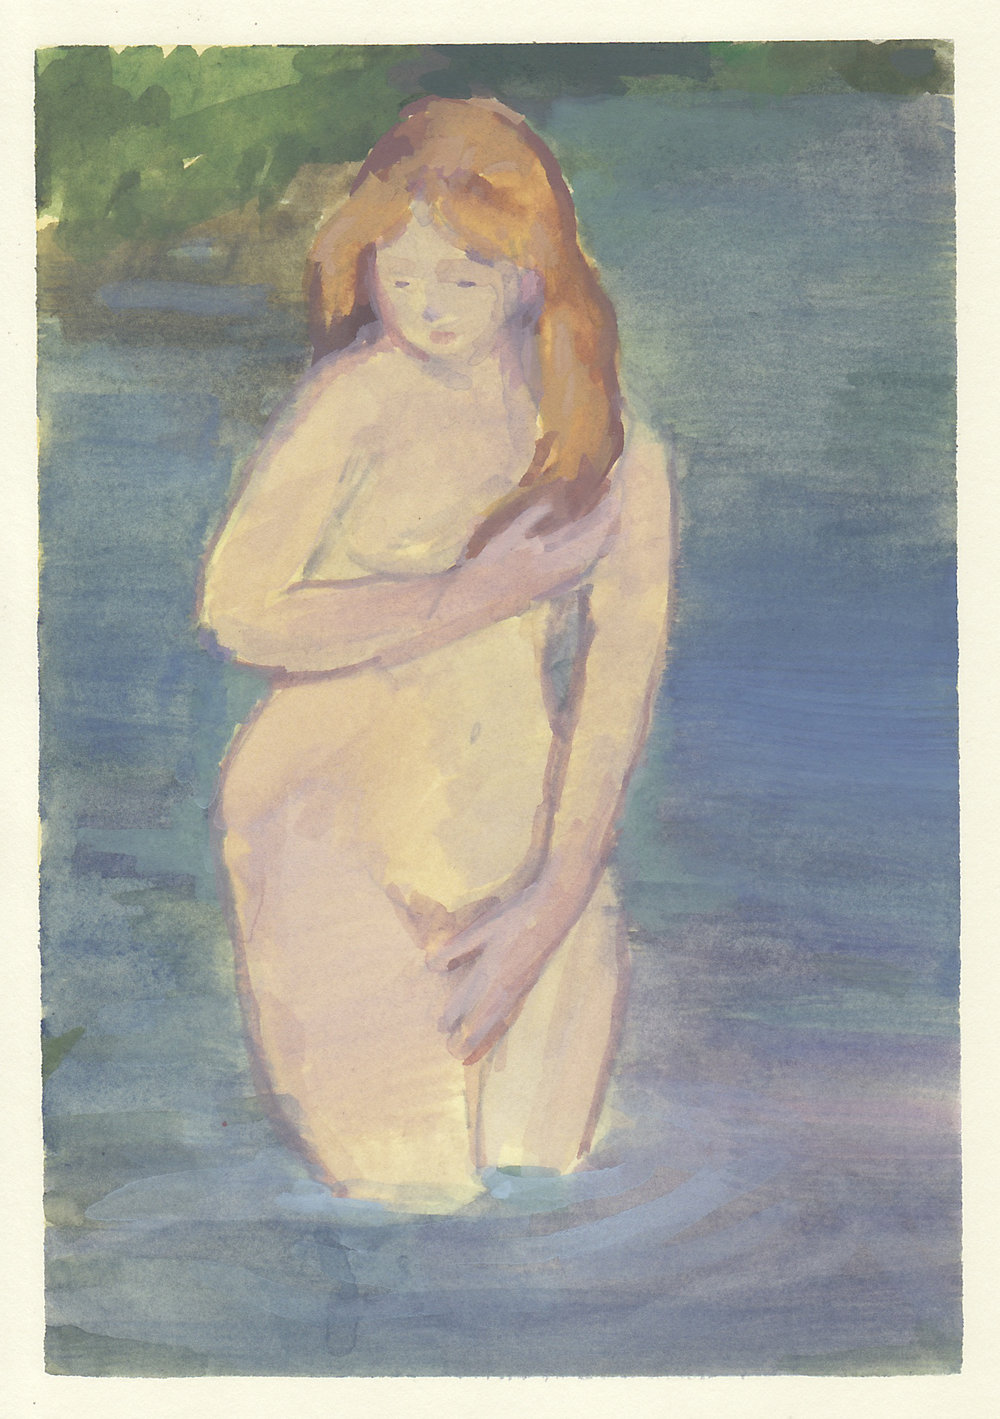 "bather   watercolor and gouache on paper  4.5x6.5""  2018   purchase"